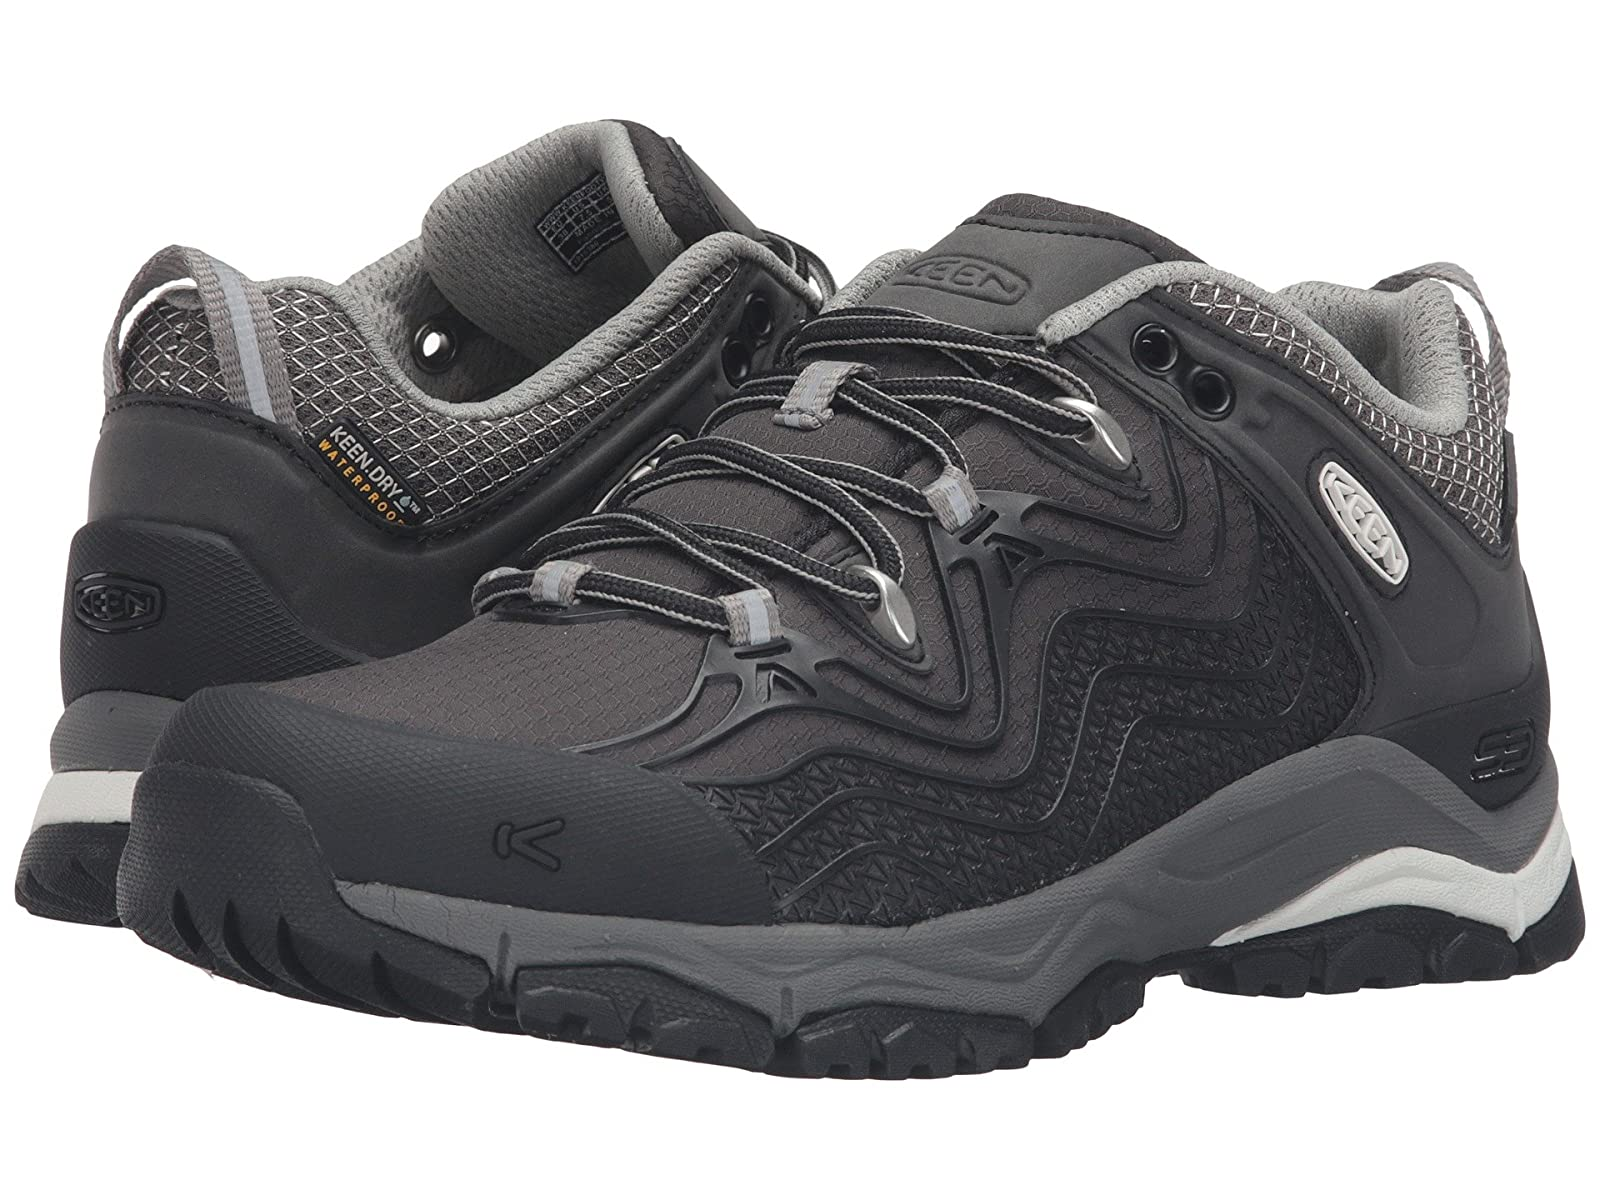 Keen Aphlex WaterproofCheap and distinctive eye-catching shoes